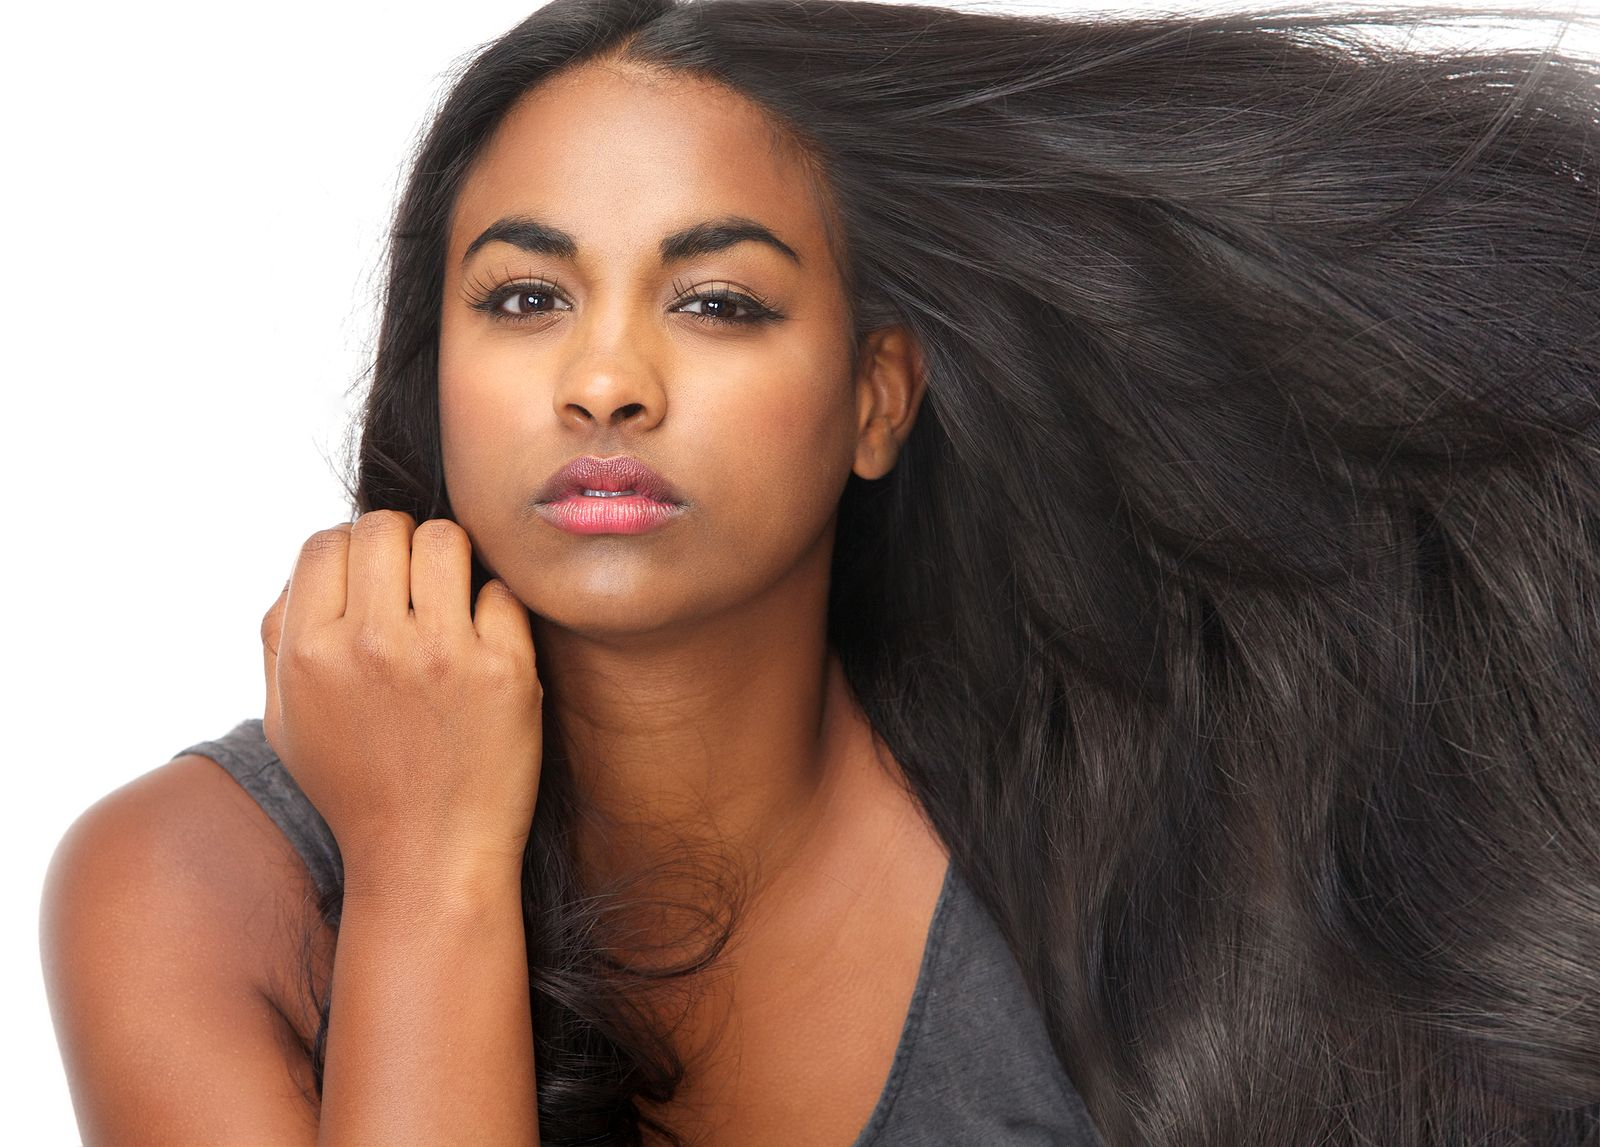 hair bonding: are there advantages for wearing hair bonding